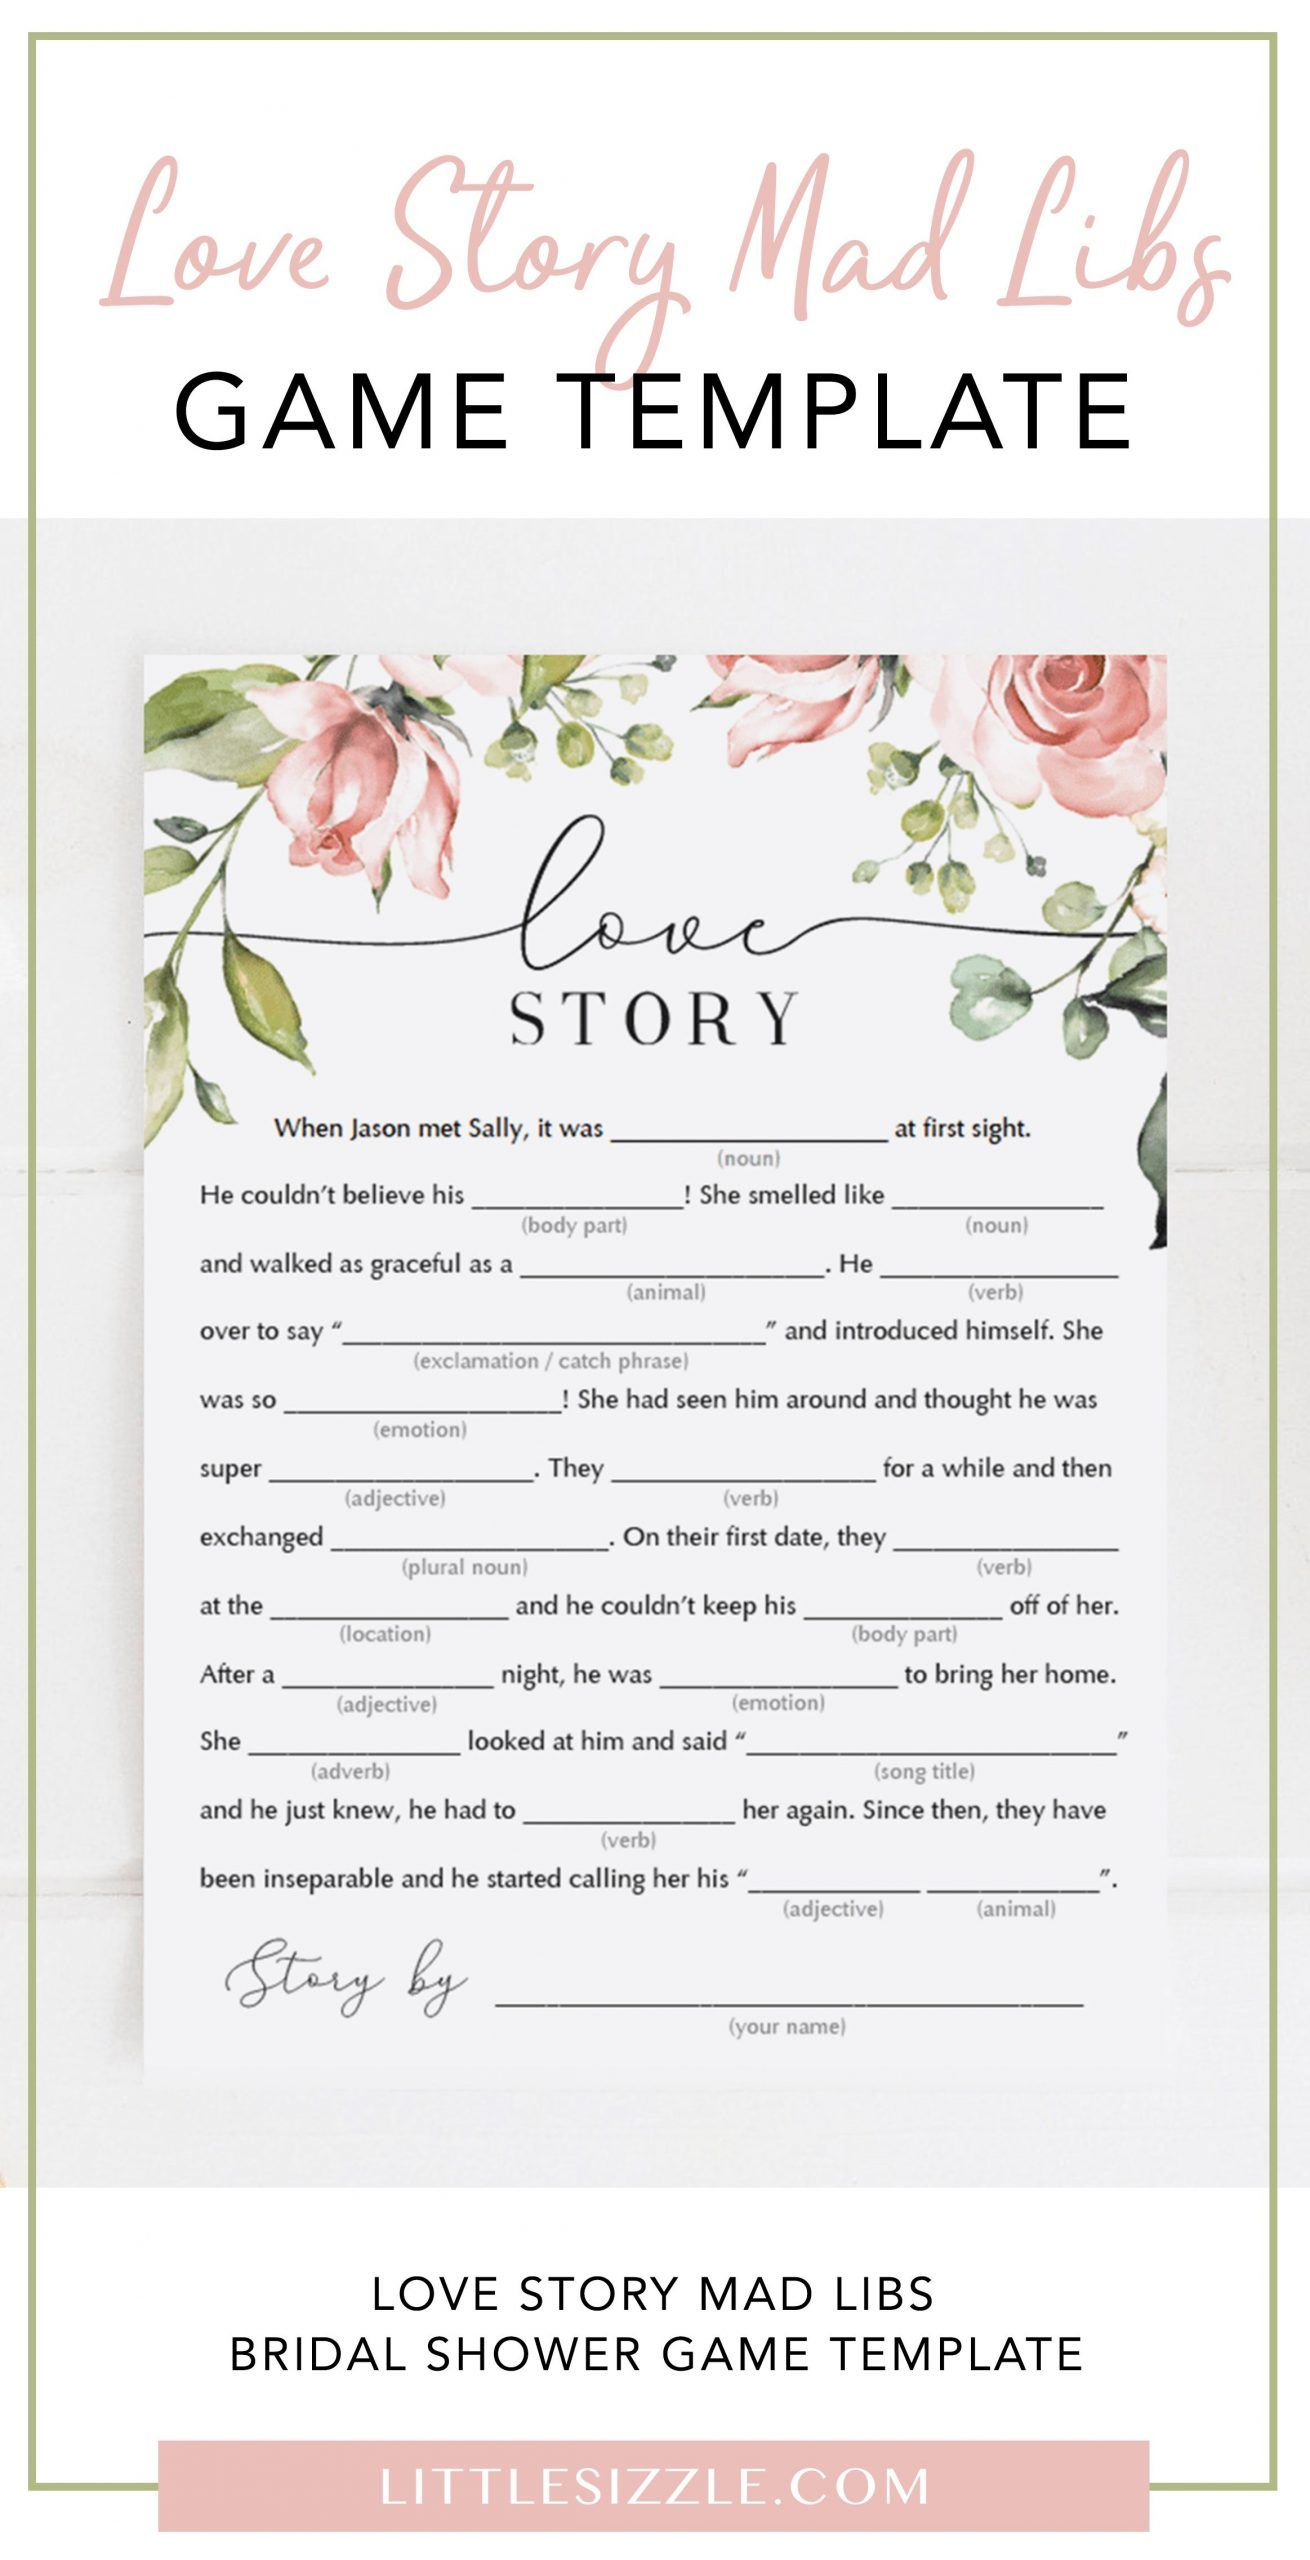 Funny Bridal Shower Mad Libs Love Story Game Template By